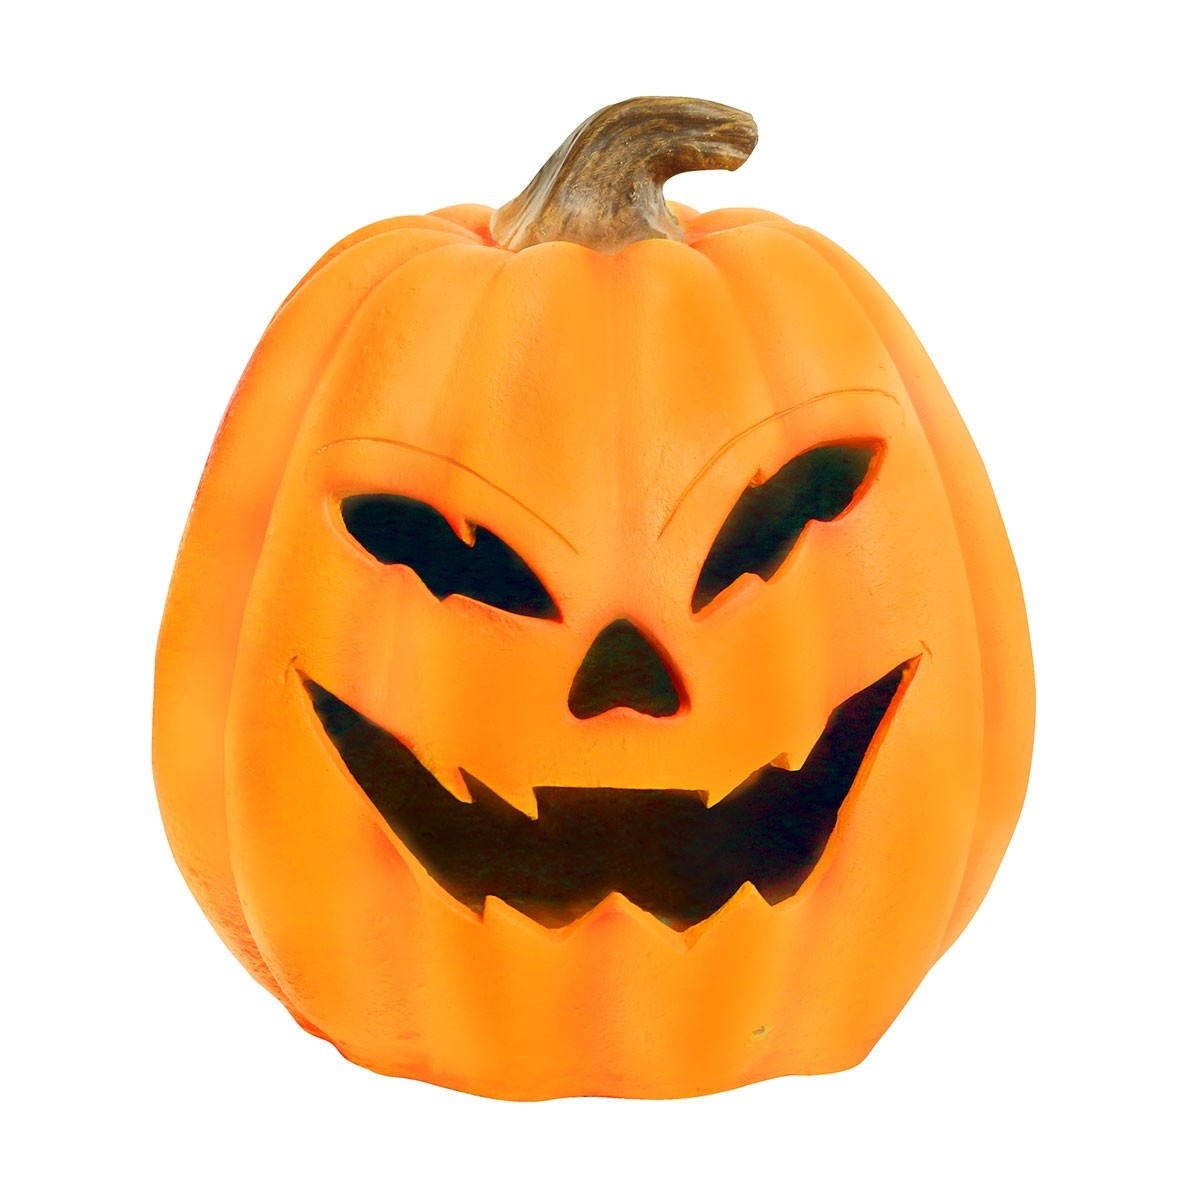 100 Motion Activated Outdoor Halloween Decorations